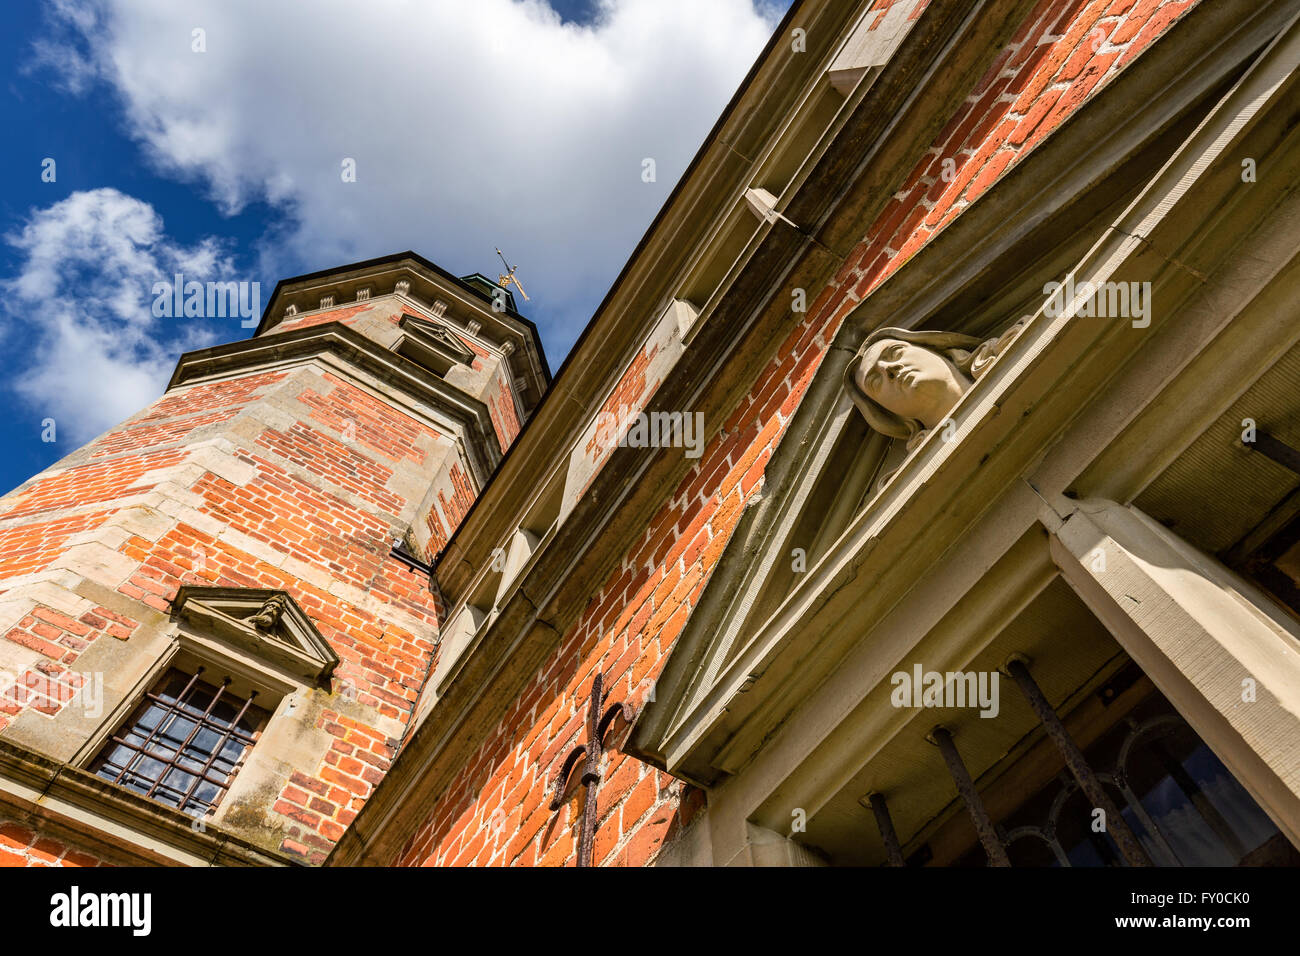 Details from the Bath House or Royal Hunting Lodge, Frederiksborg Castle, Denmark - Stock Image